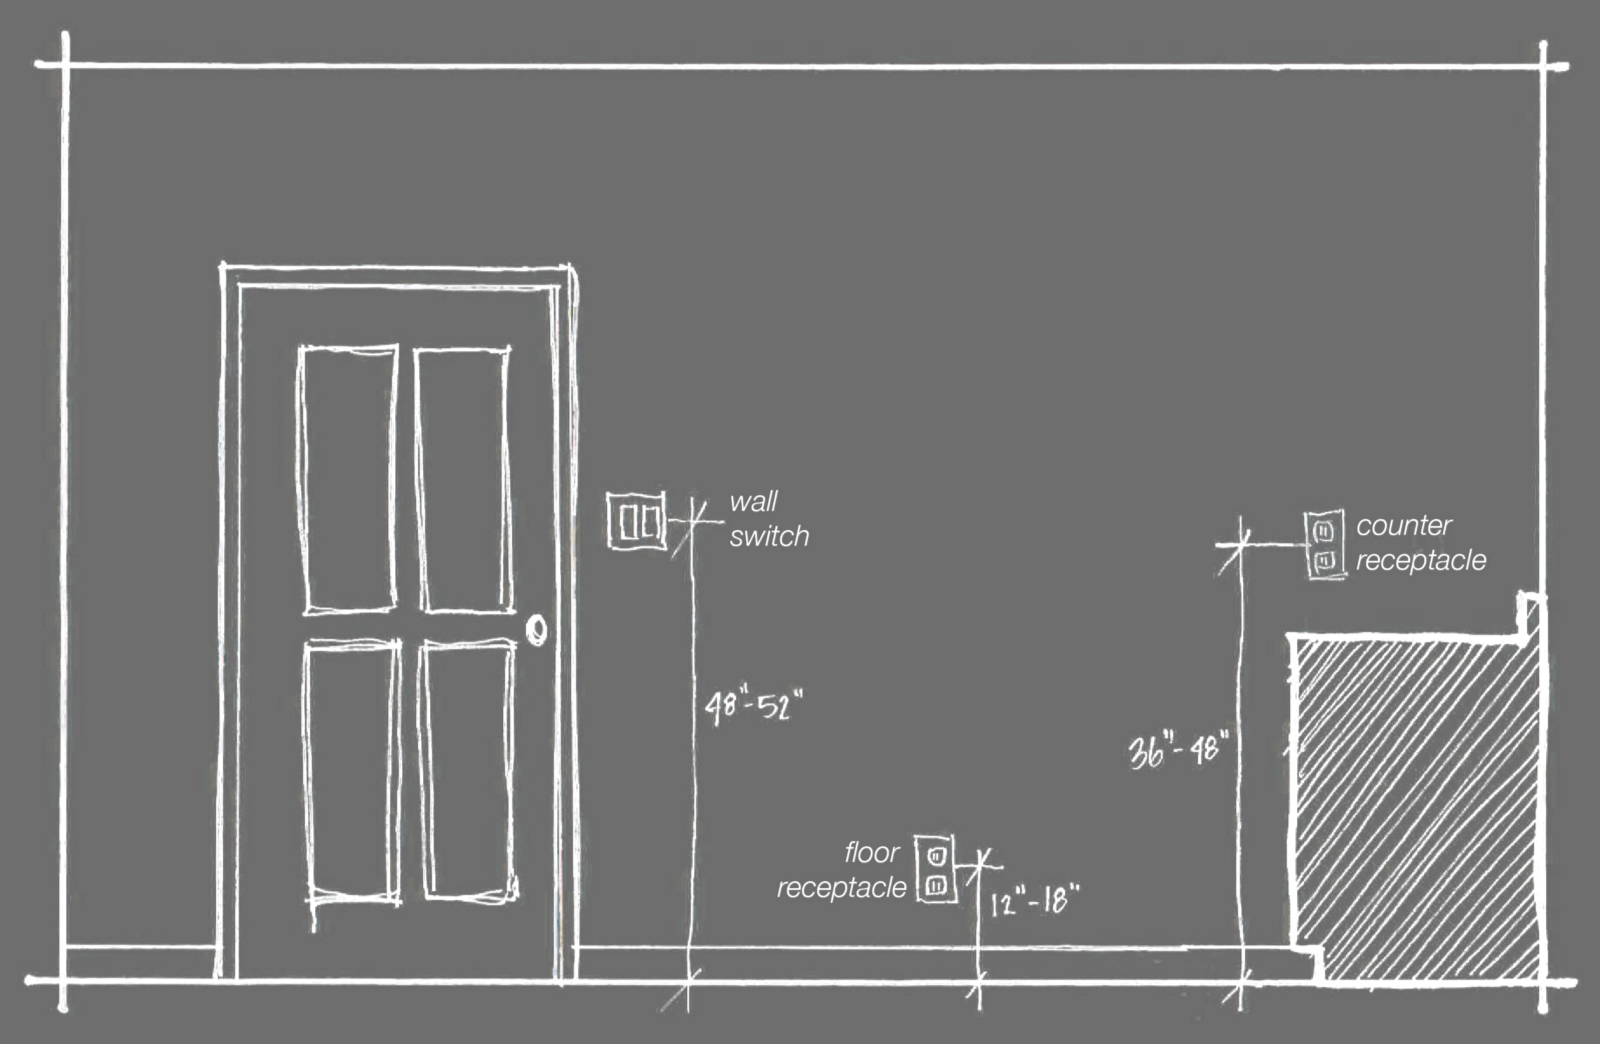 What Is The Required Minimum Height Aff Of A Electrical Wall Outlet Wiring Diagrams Basement Finish Based On Skwerls Research Nyc Does Not Specify Common For Between 12 To 18 Inches Above Floor